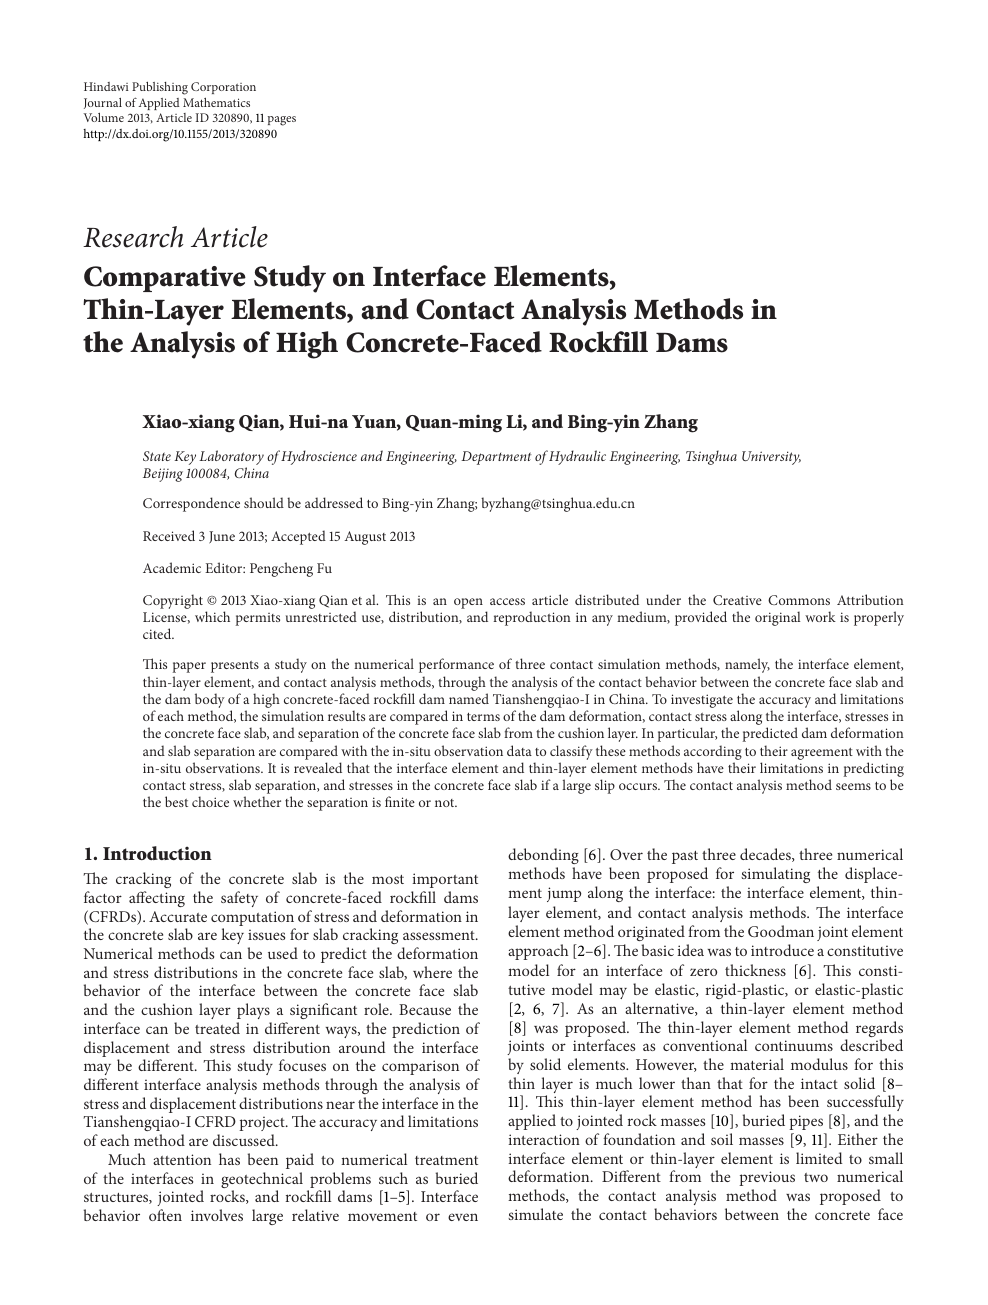 Comparative Study on Interface Elements, Thin-Layer Elements